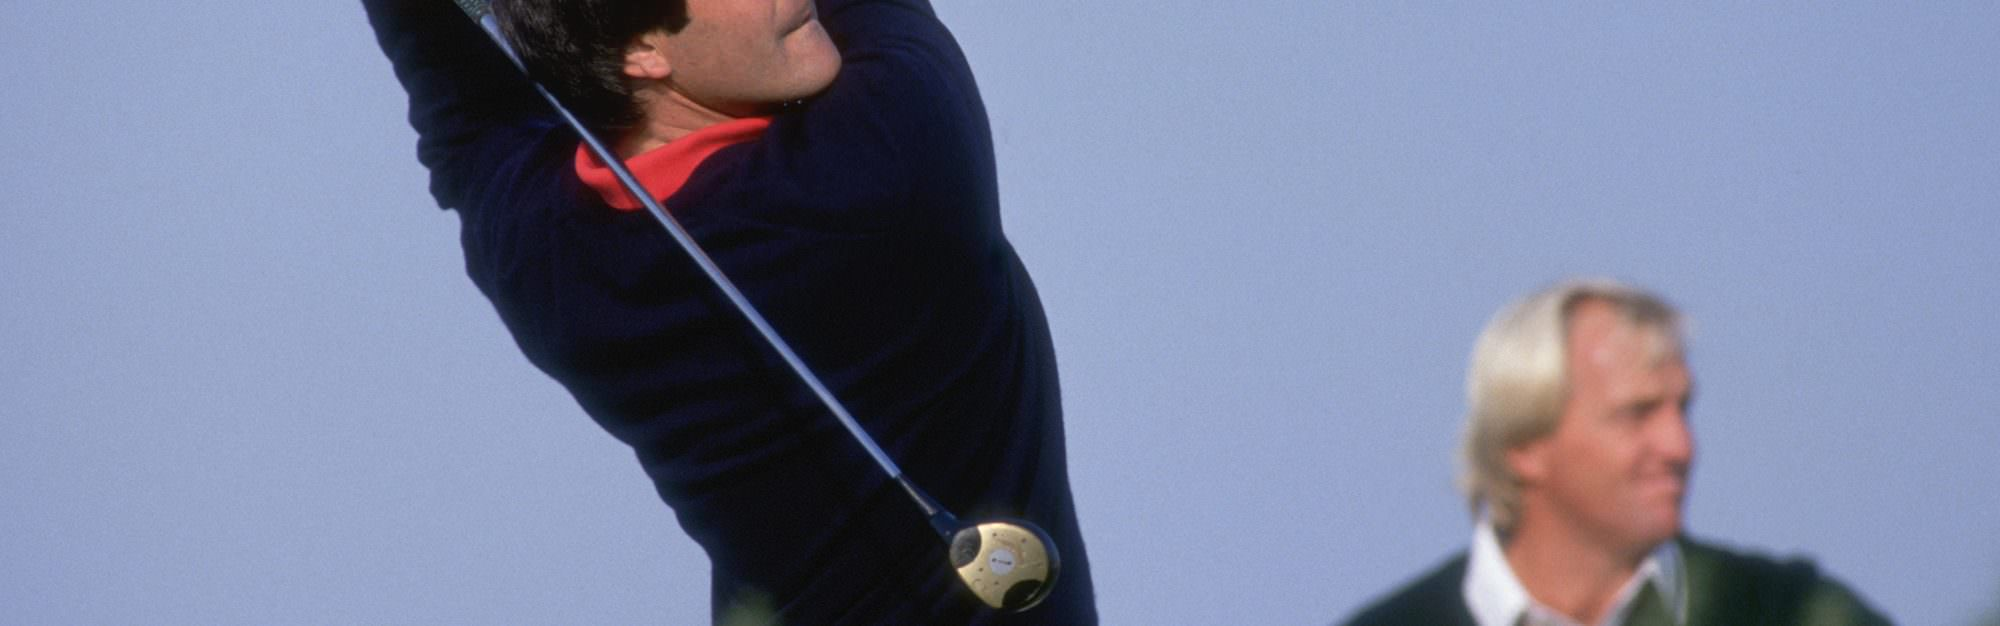 On top of the world: The equipment used by every player to reach World No 1